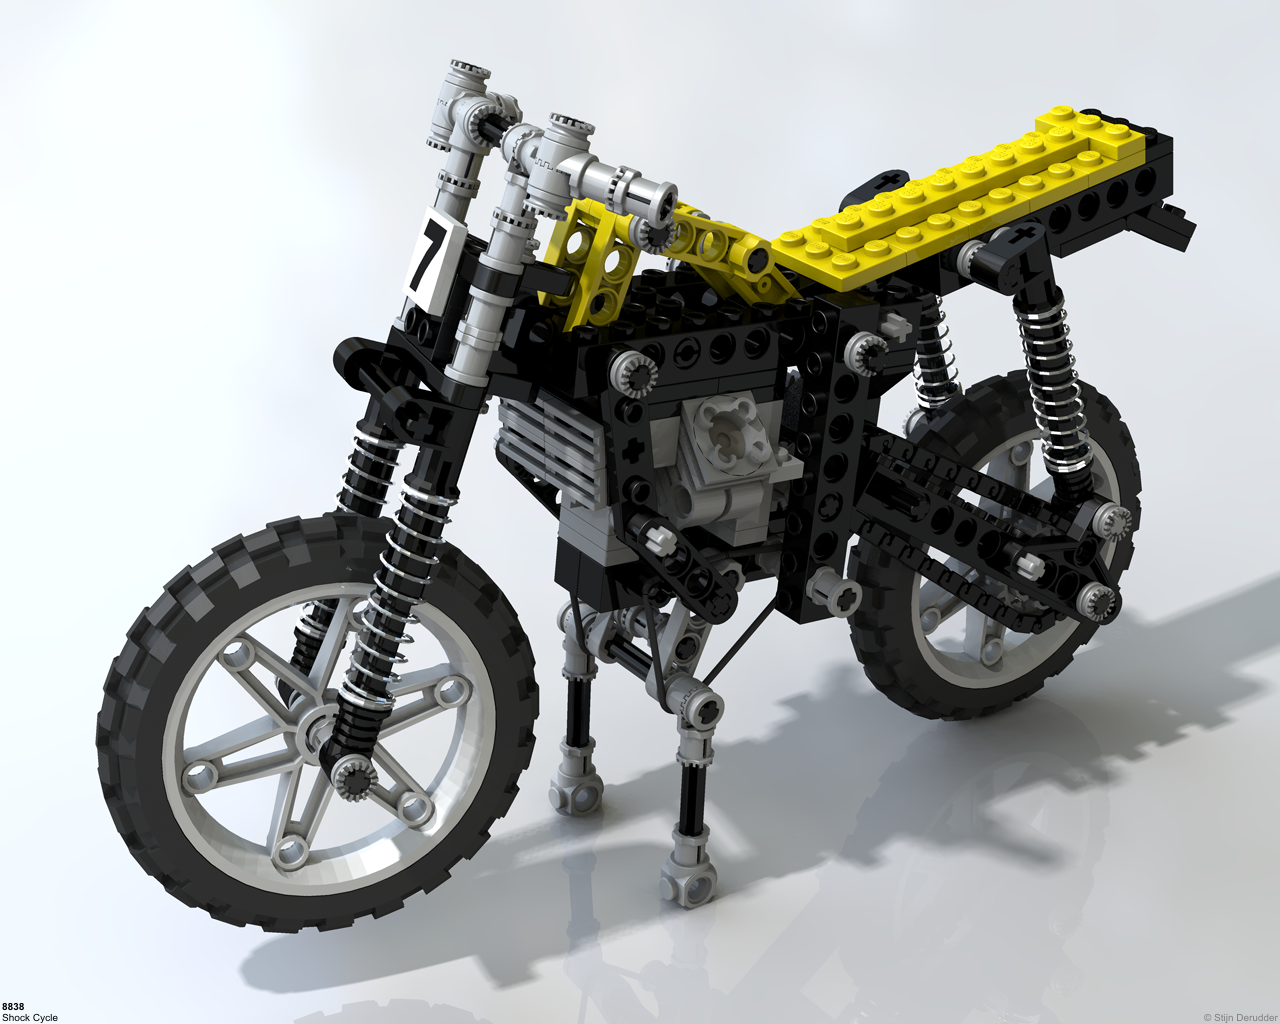 lego technic motorcycles 8838 shock cycle. Black Bedroom Furniture Sets. Home Design Ideas